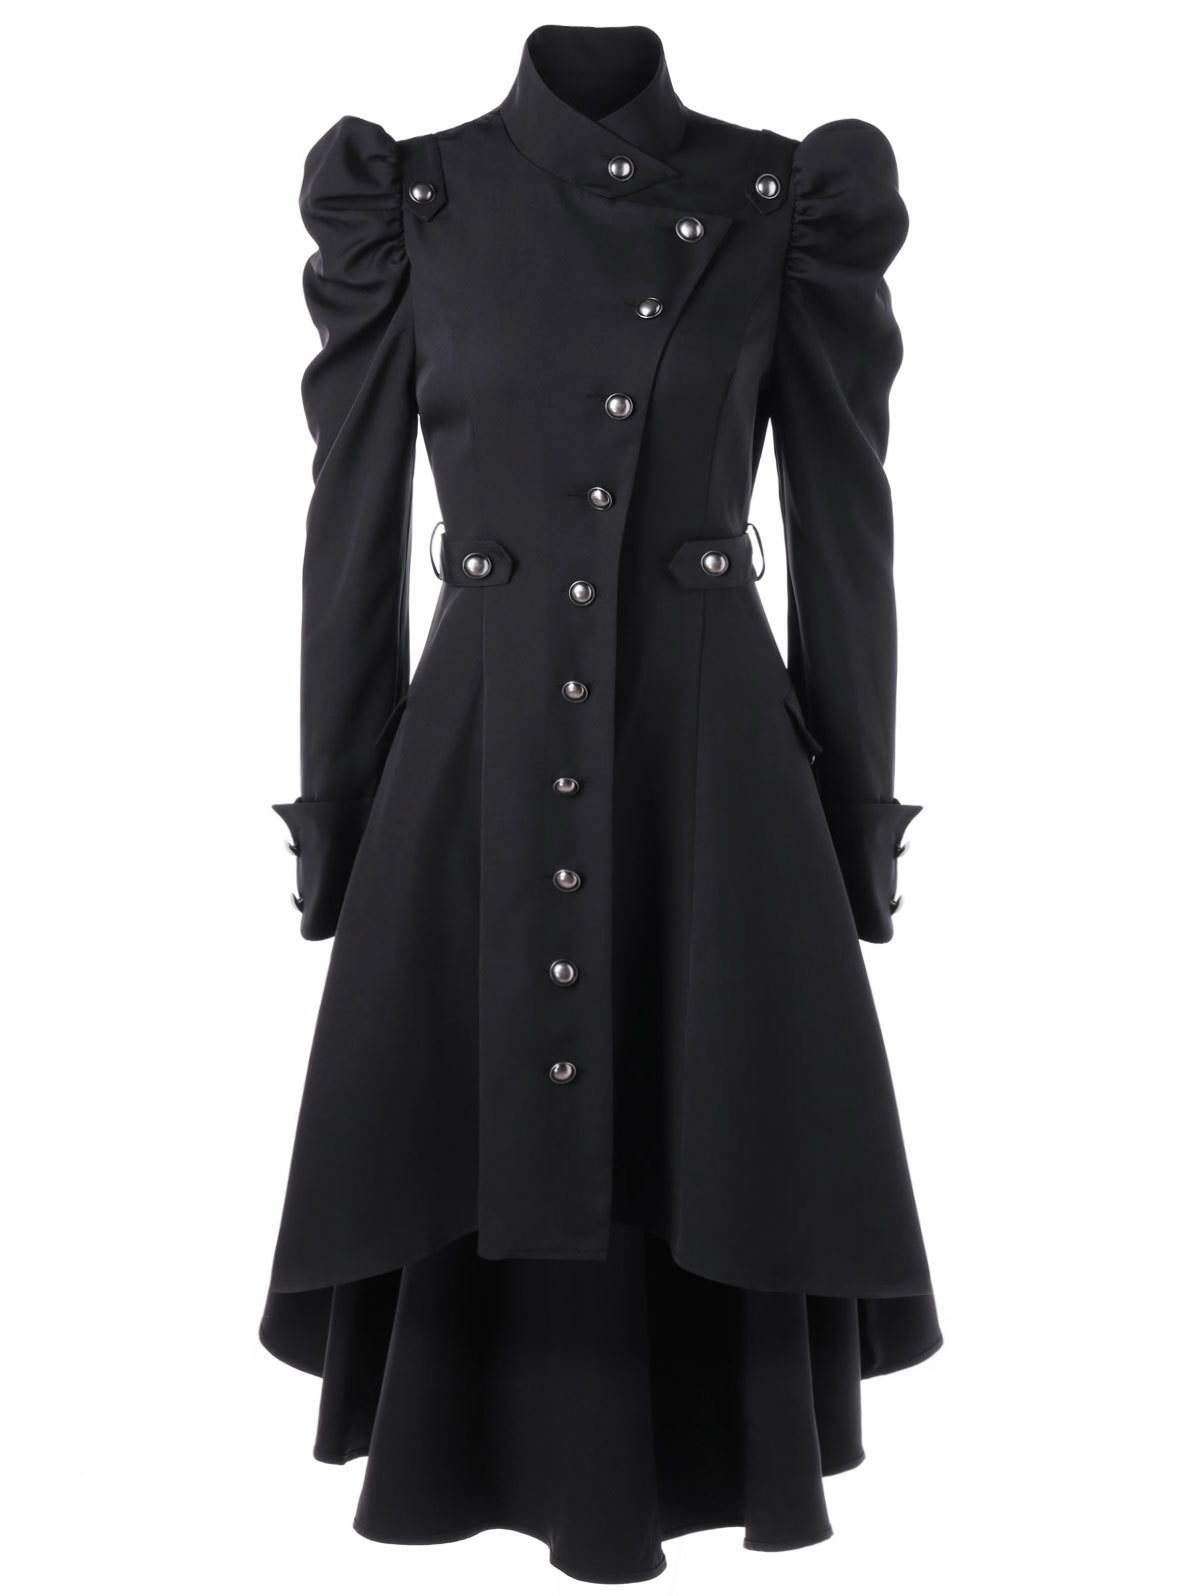 Women Steampunk Gothic Winter Coats Long Sleeve Jacket with hat Cosplay Costume Black Coat Medieval Noble Court Princess Outwear